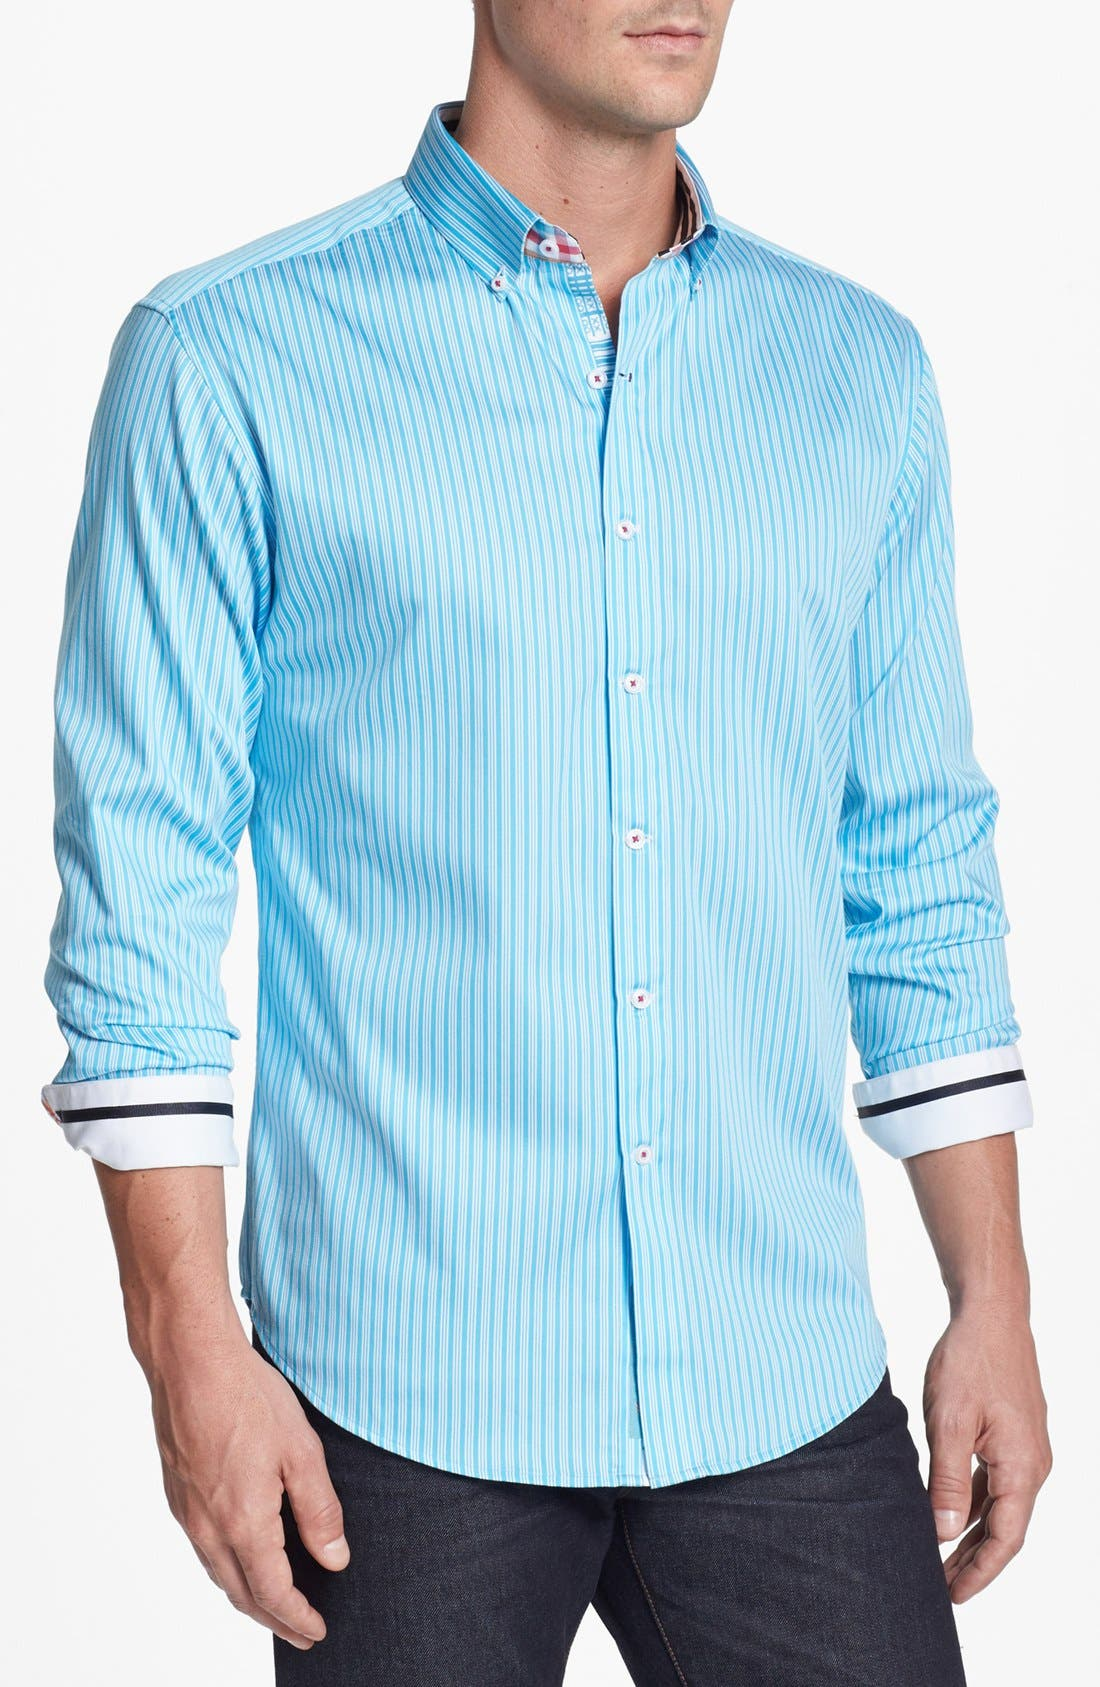 Main Image - Robert Graham 'Tanjung' Sport Shirt